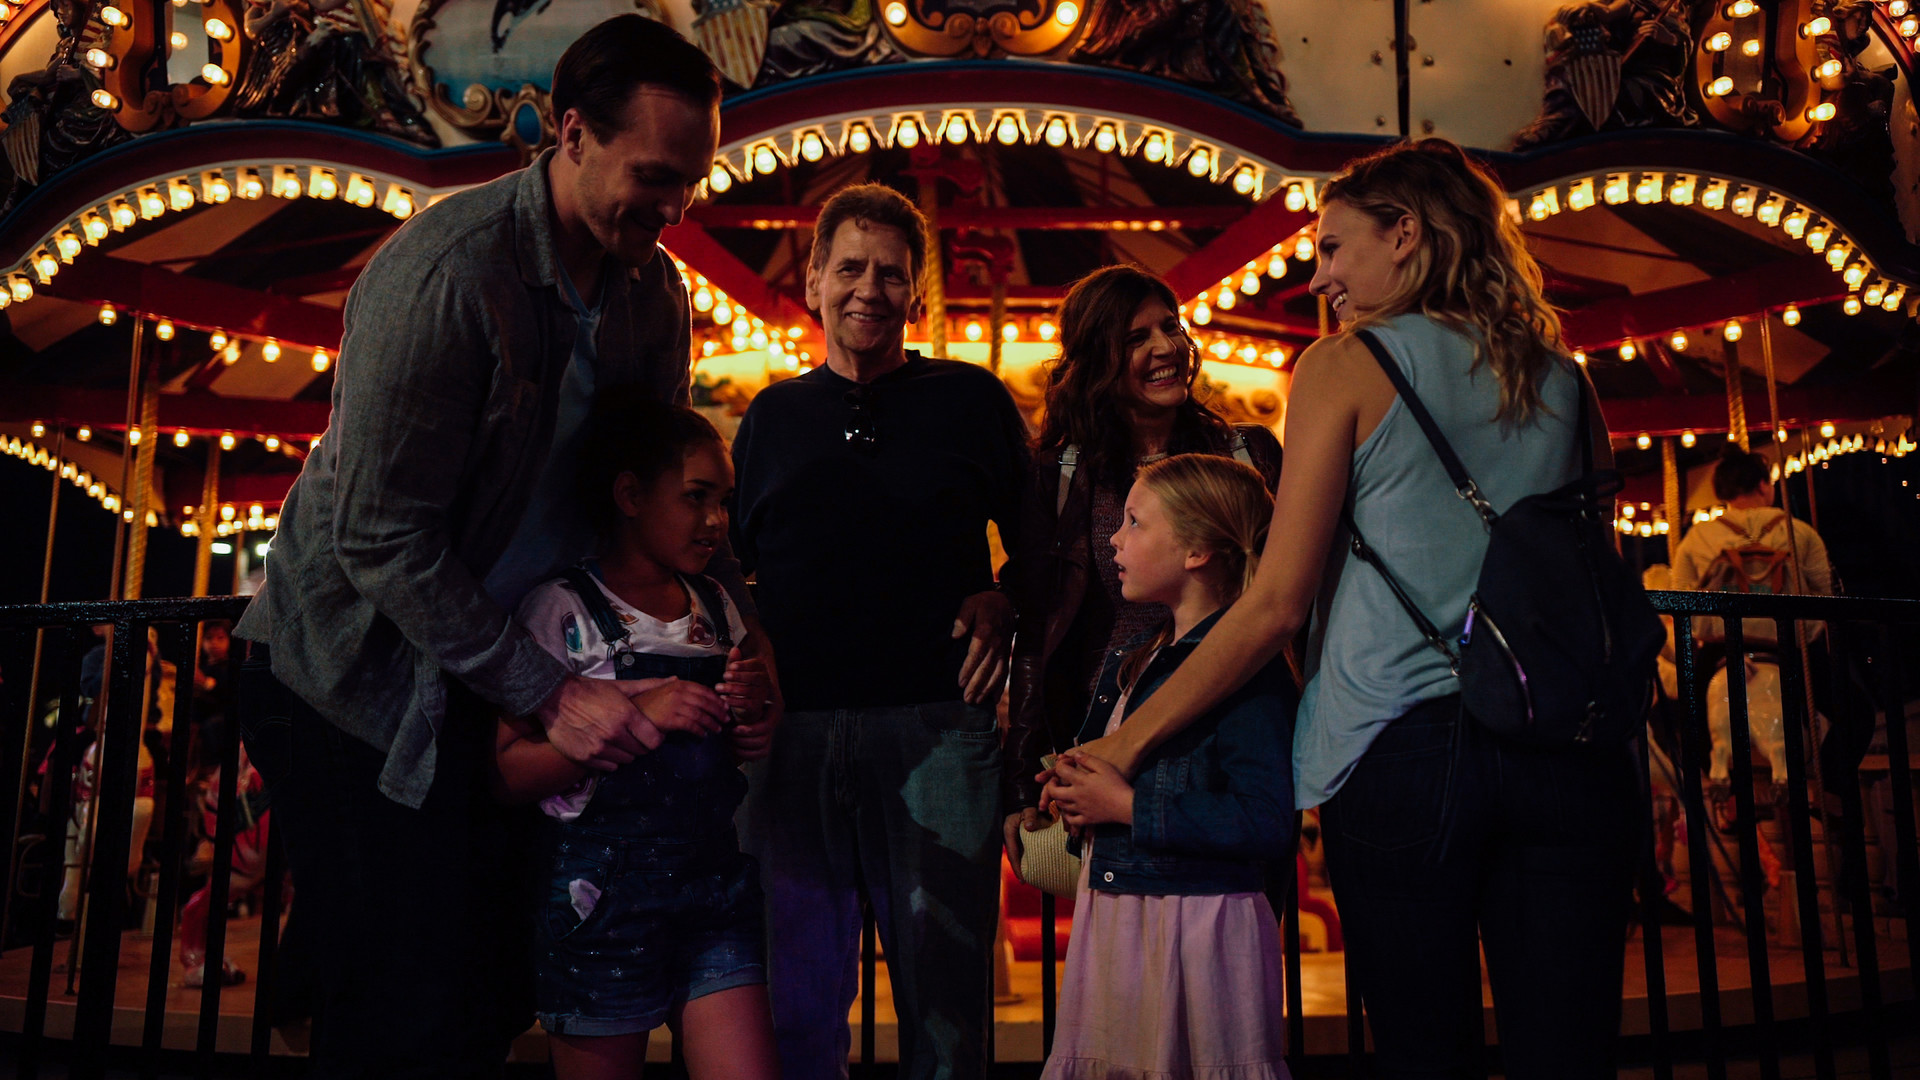 Josh George, Leilani Coleman, Larry Knight, Lizet Benrey, Morgan Marlow, and Nicole Dubois in White Wings (2018).